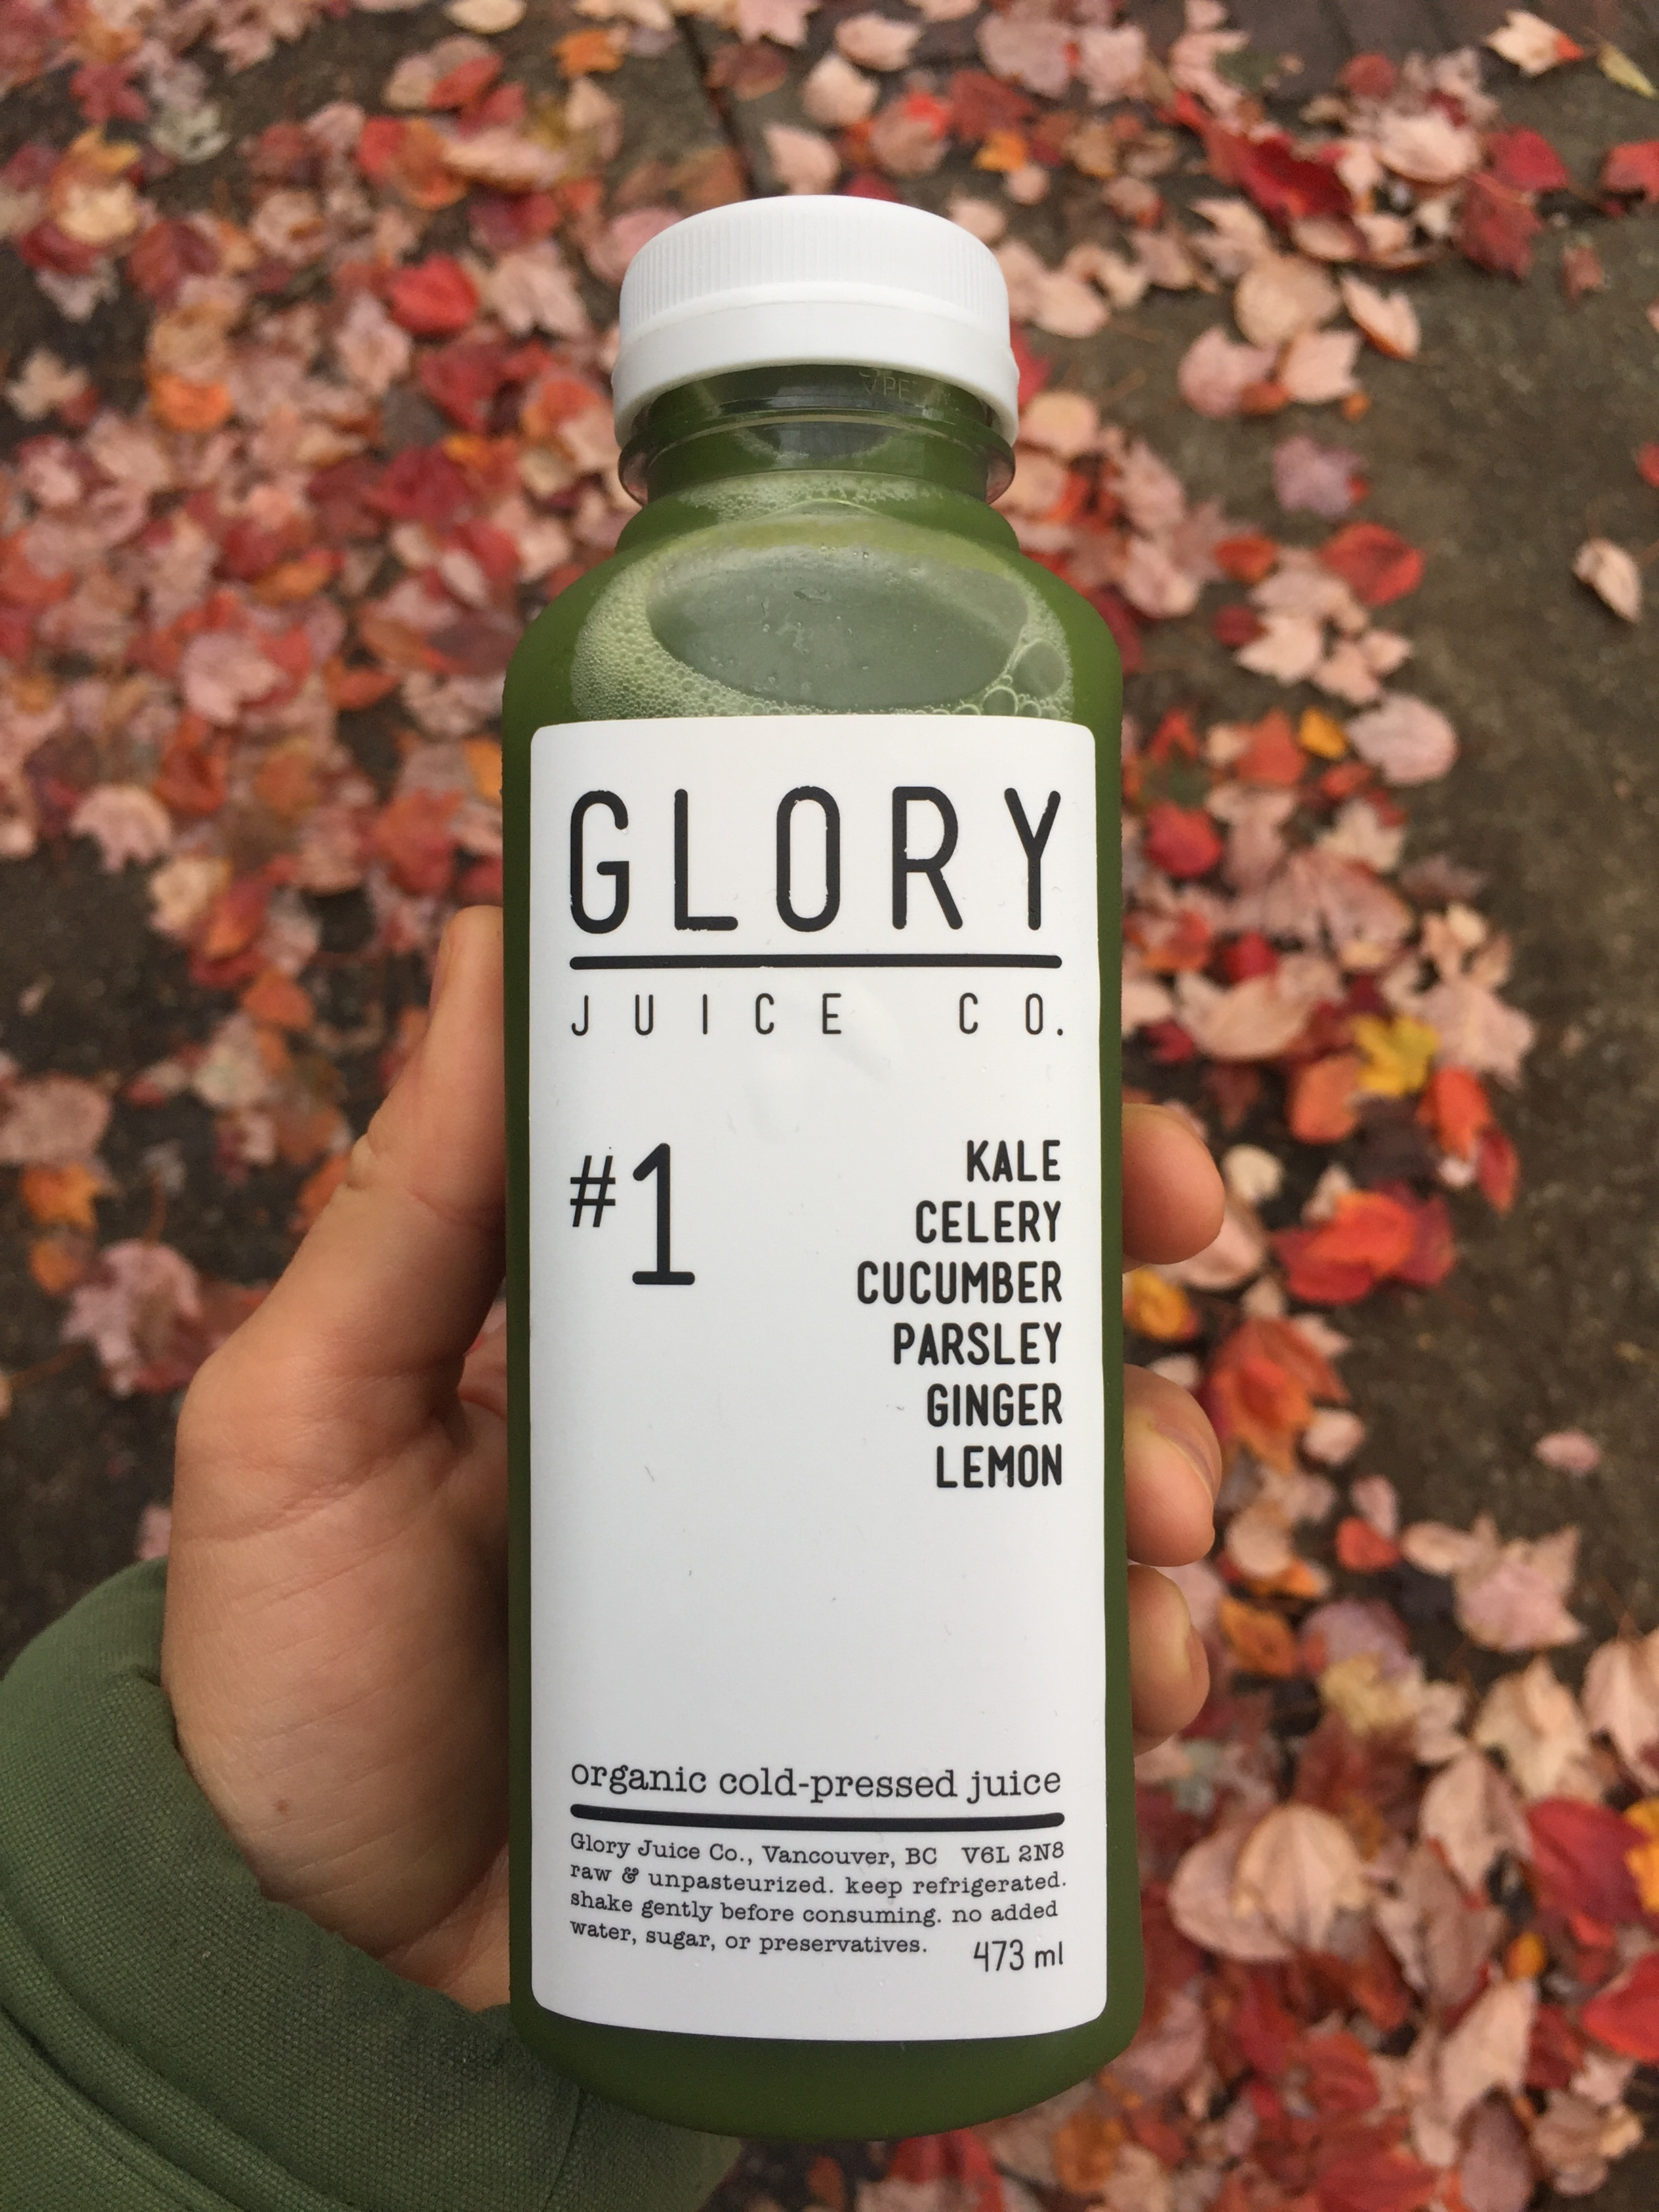 #1 greens juice, from Glory Juice Co.